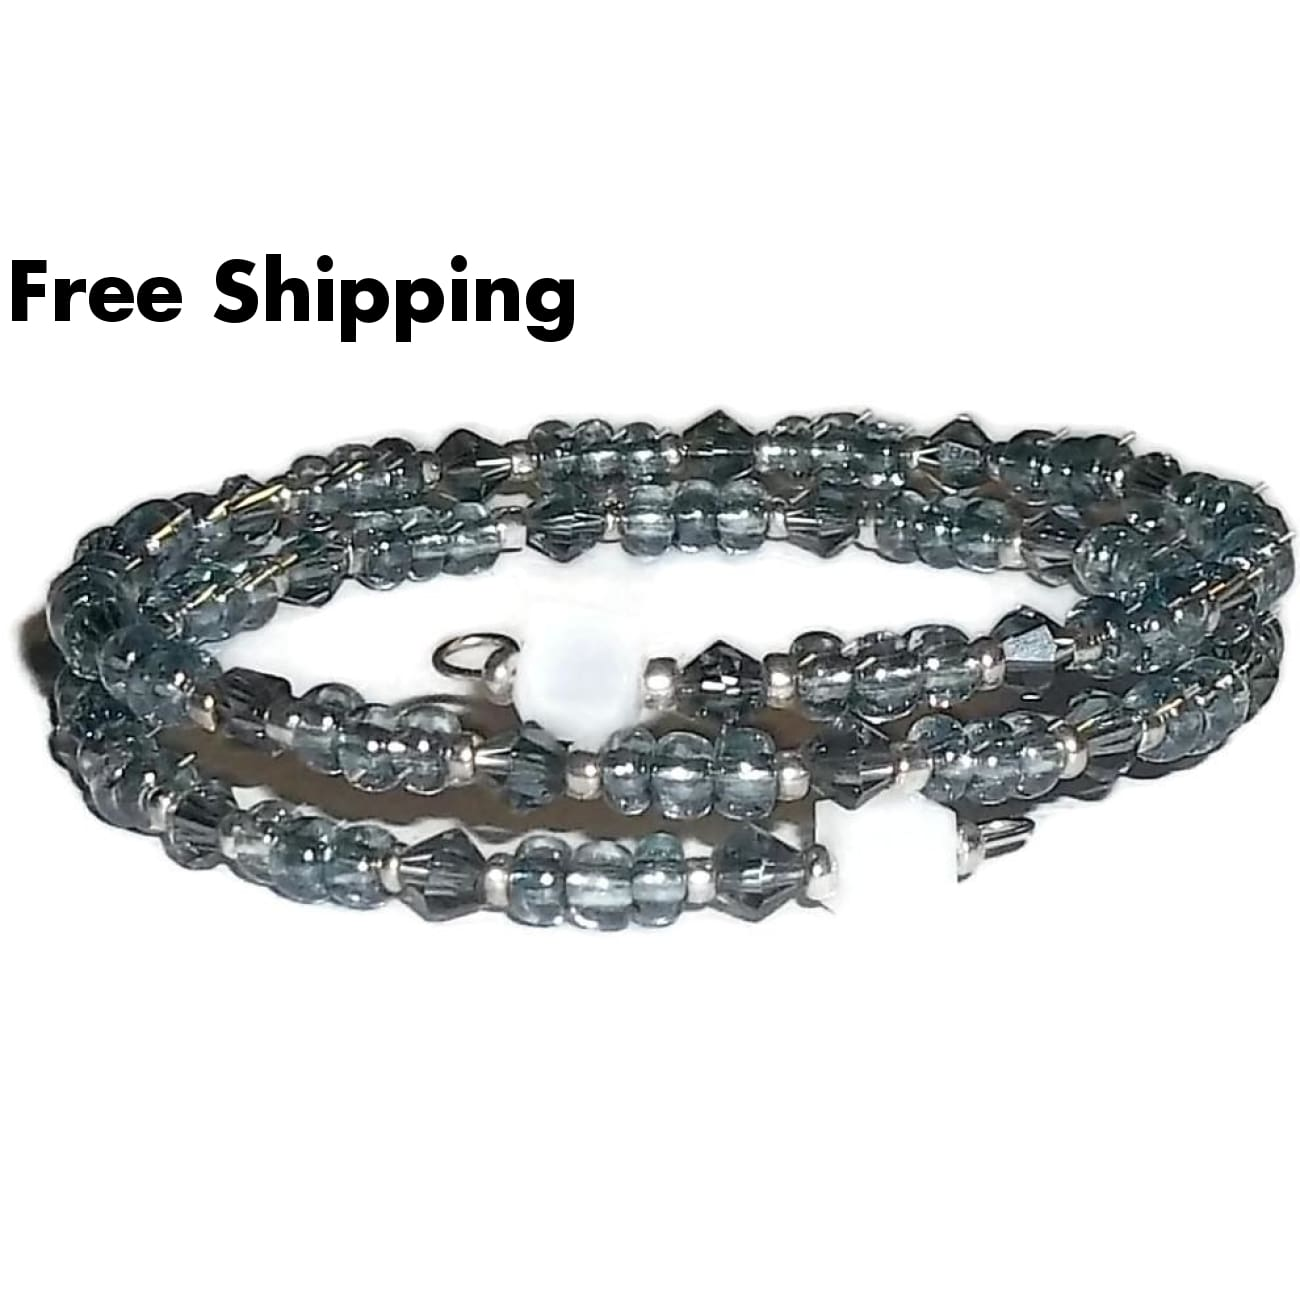 Slate Blue & Square White Milk Glass Beaded Artisan Crafted Wrap Bracelet (S-M) - New Arrival